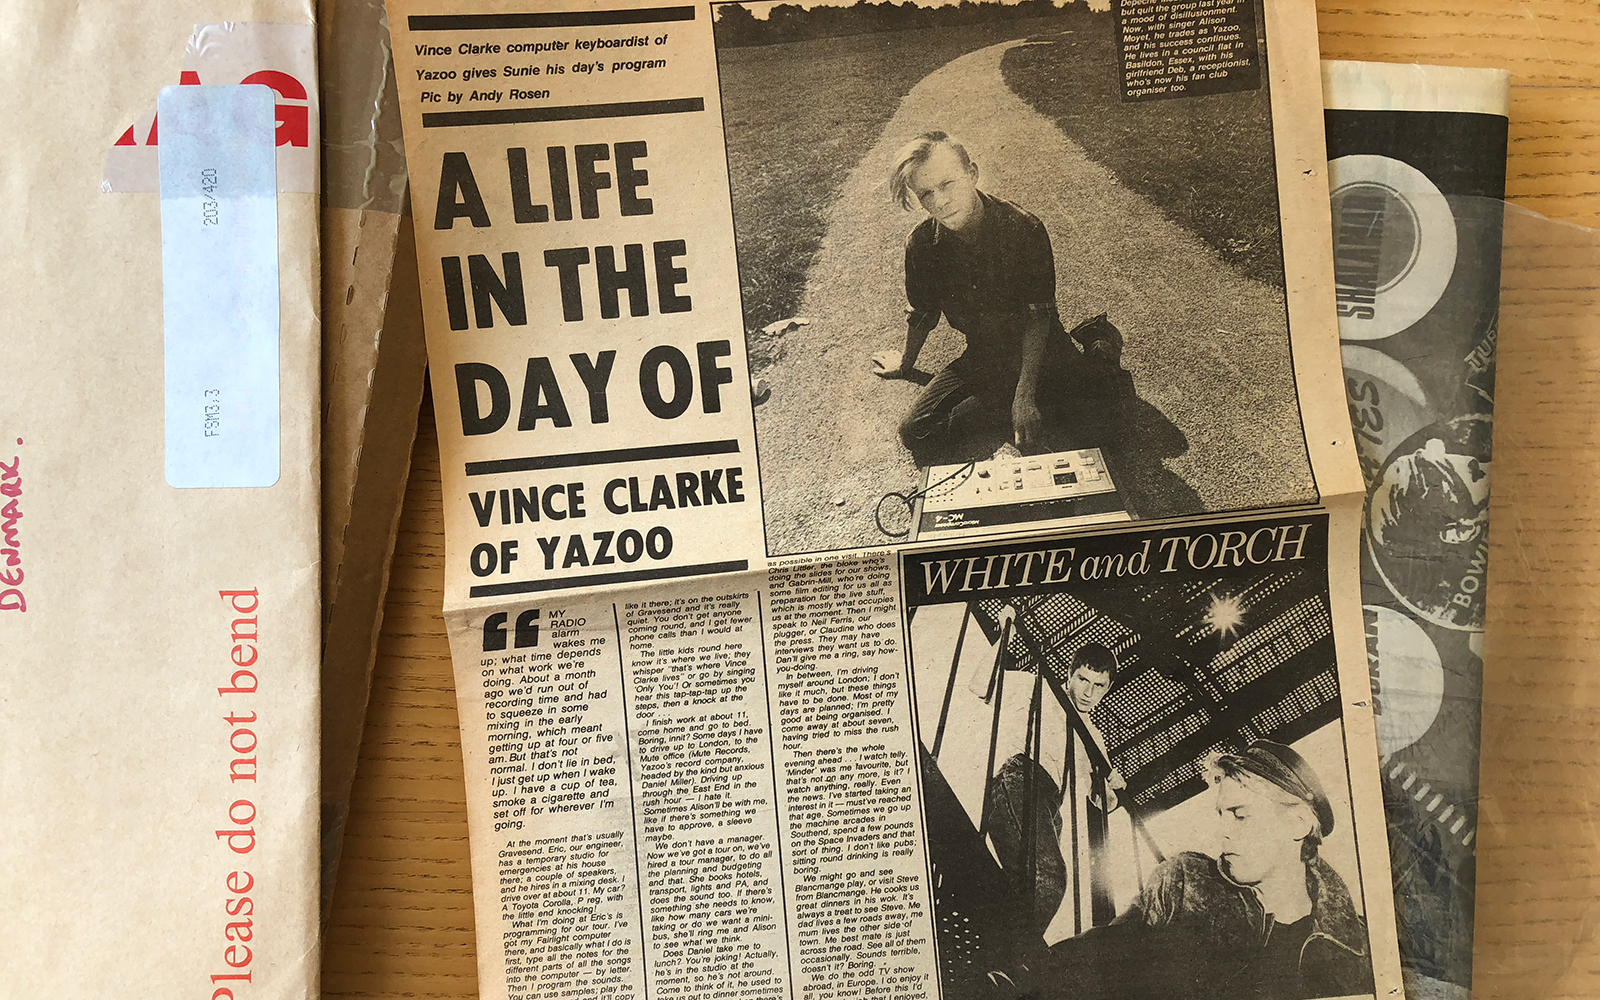 A Life In The Day Of - Vince Clarke of Yazoo